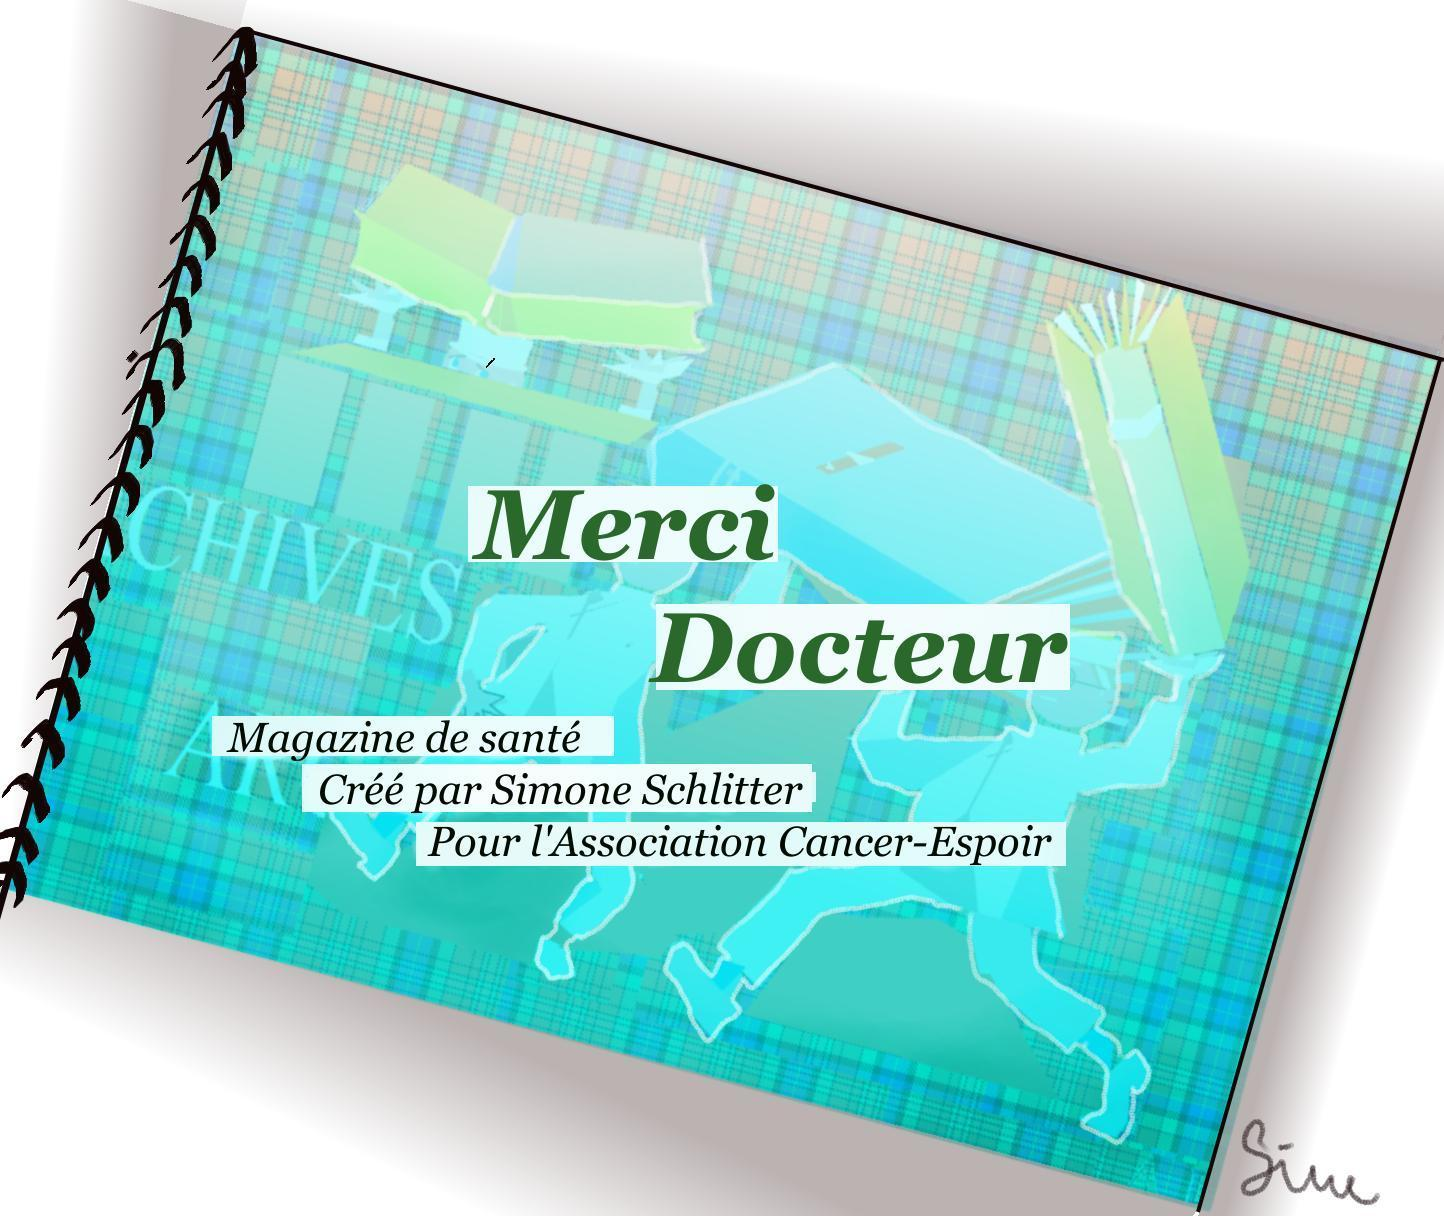 Merci docteur re cup 1